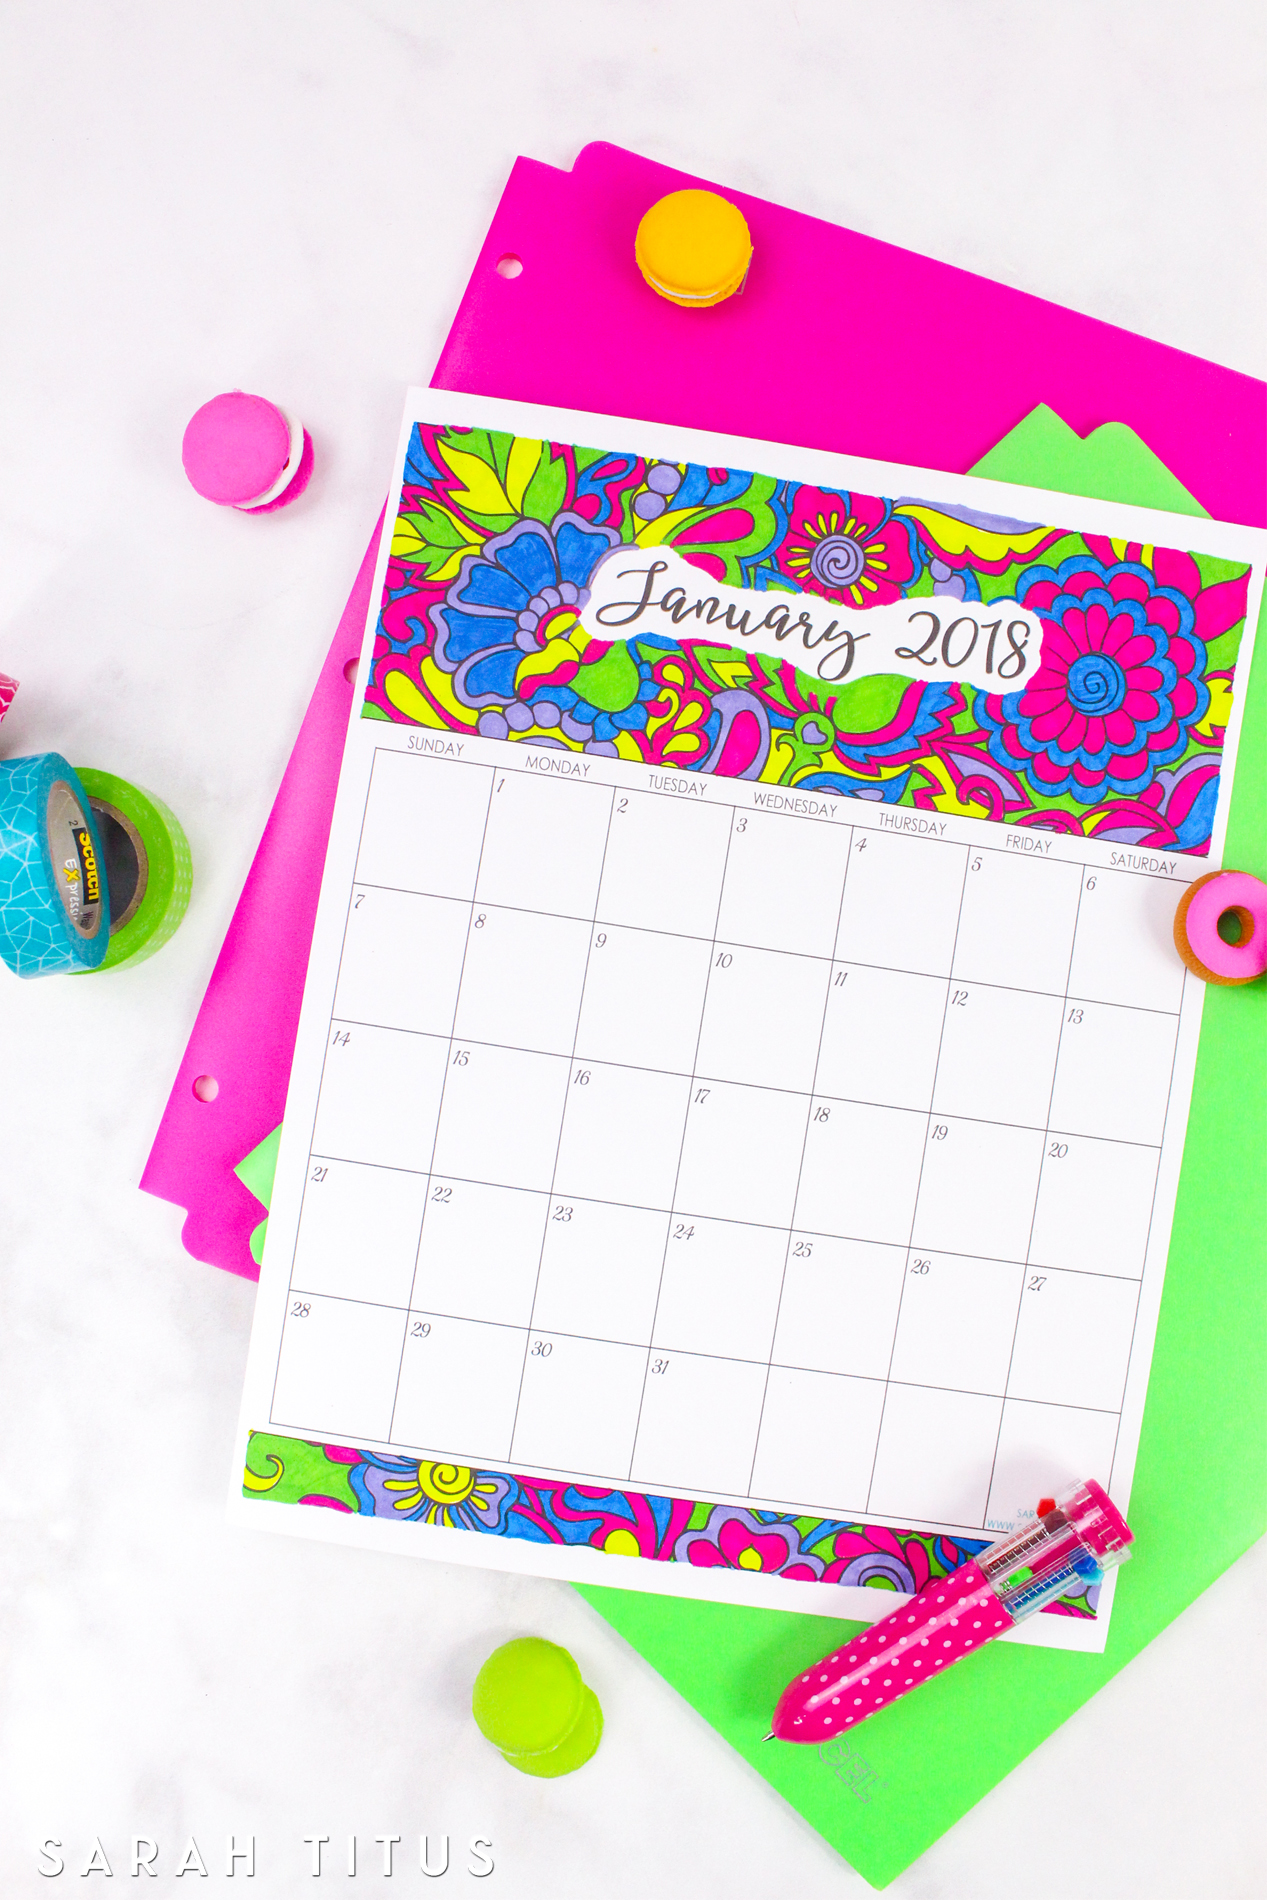 It had just been a stressful week for me. What better thing to color than a calendar! As I was coloring, I found it so relaxing. Before I knew it, my stress had melted away and I was calm. #2018freeprintablecalendars #2018monthlycalendars #2018calendars #freeprintables